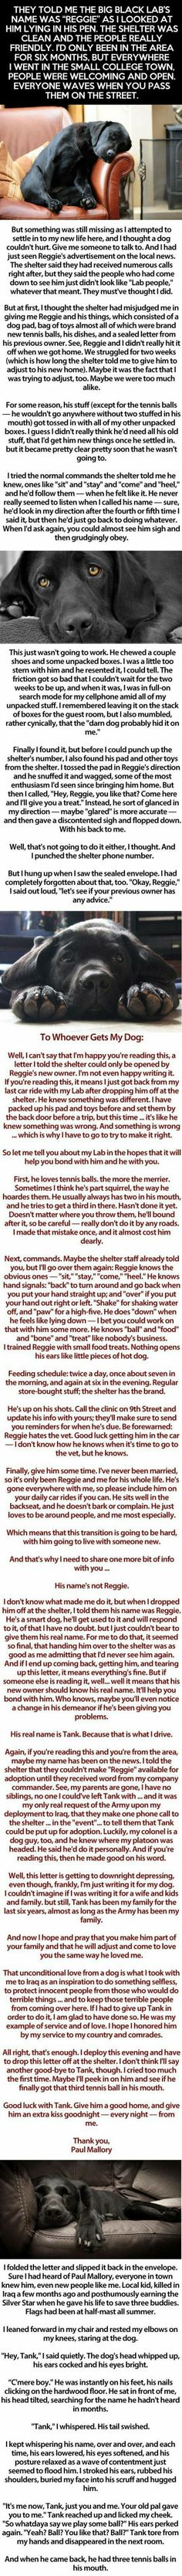 best dog stories images on pinterest doggies pets and dog cat